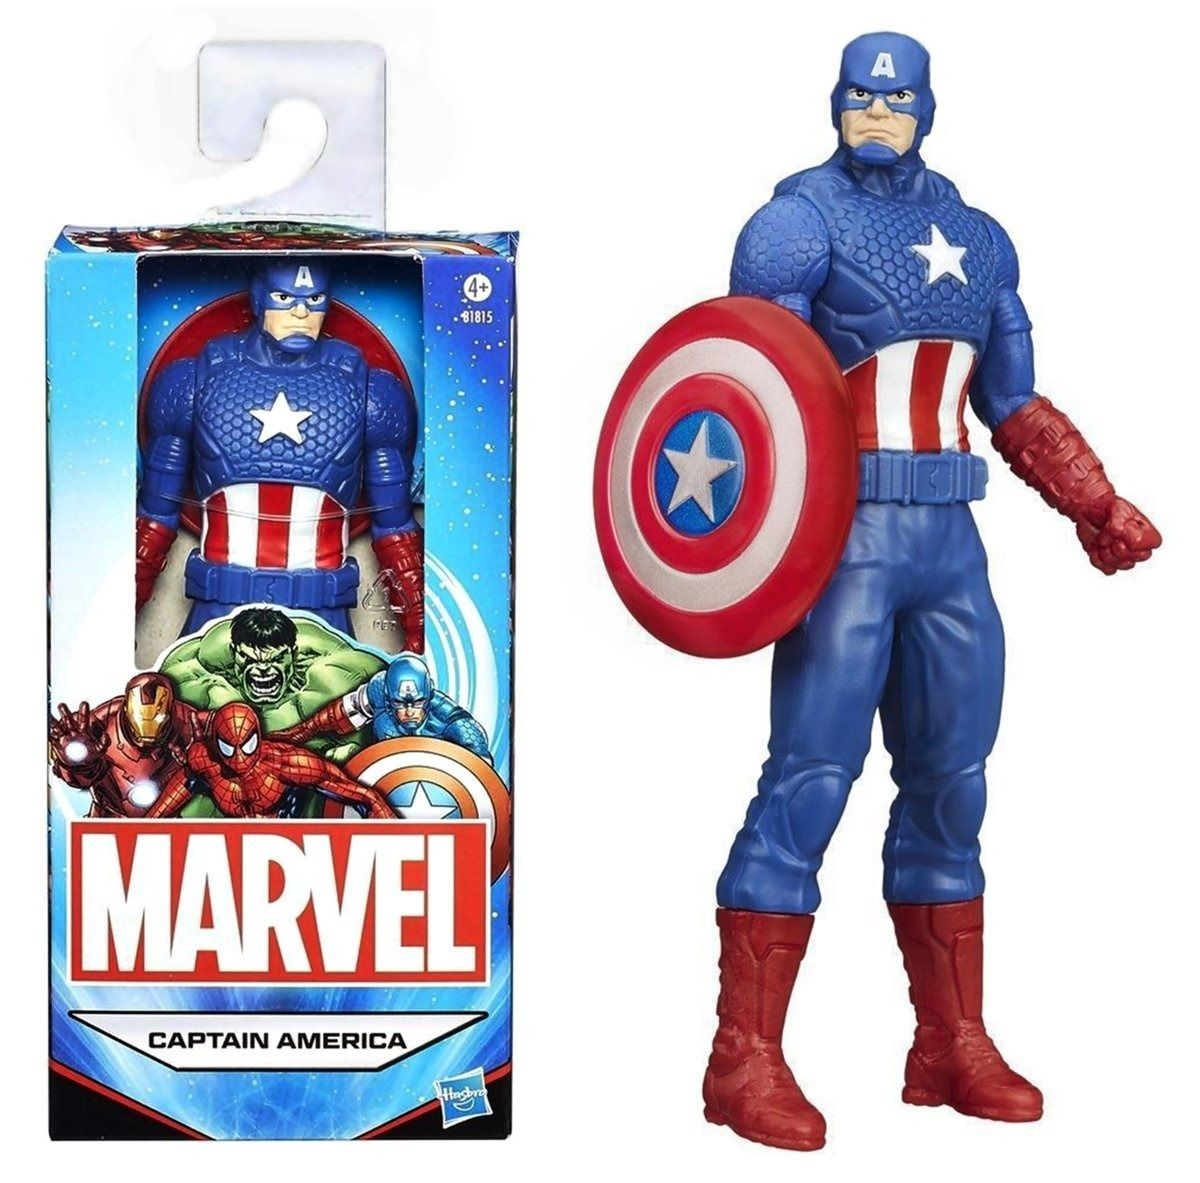 Hasbro Marvel Avengers Action Figures (character may vary)